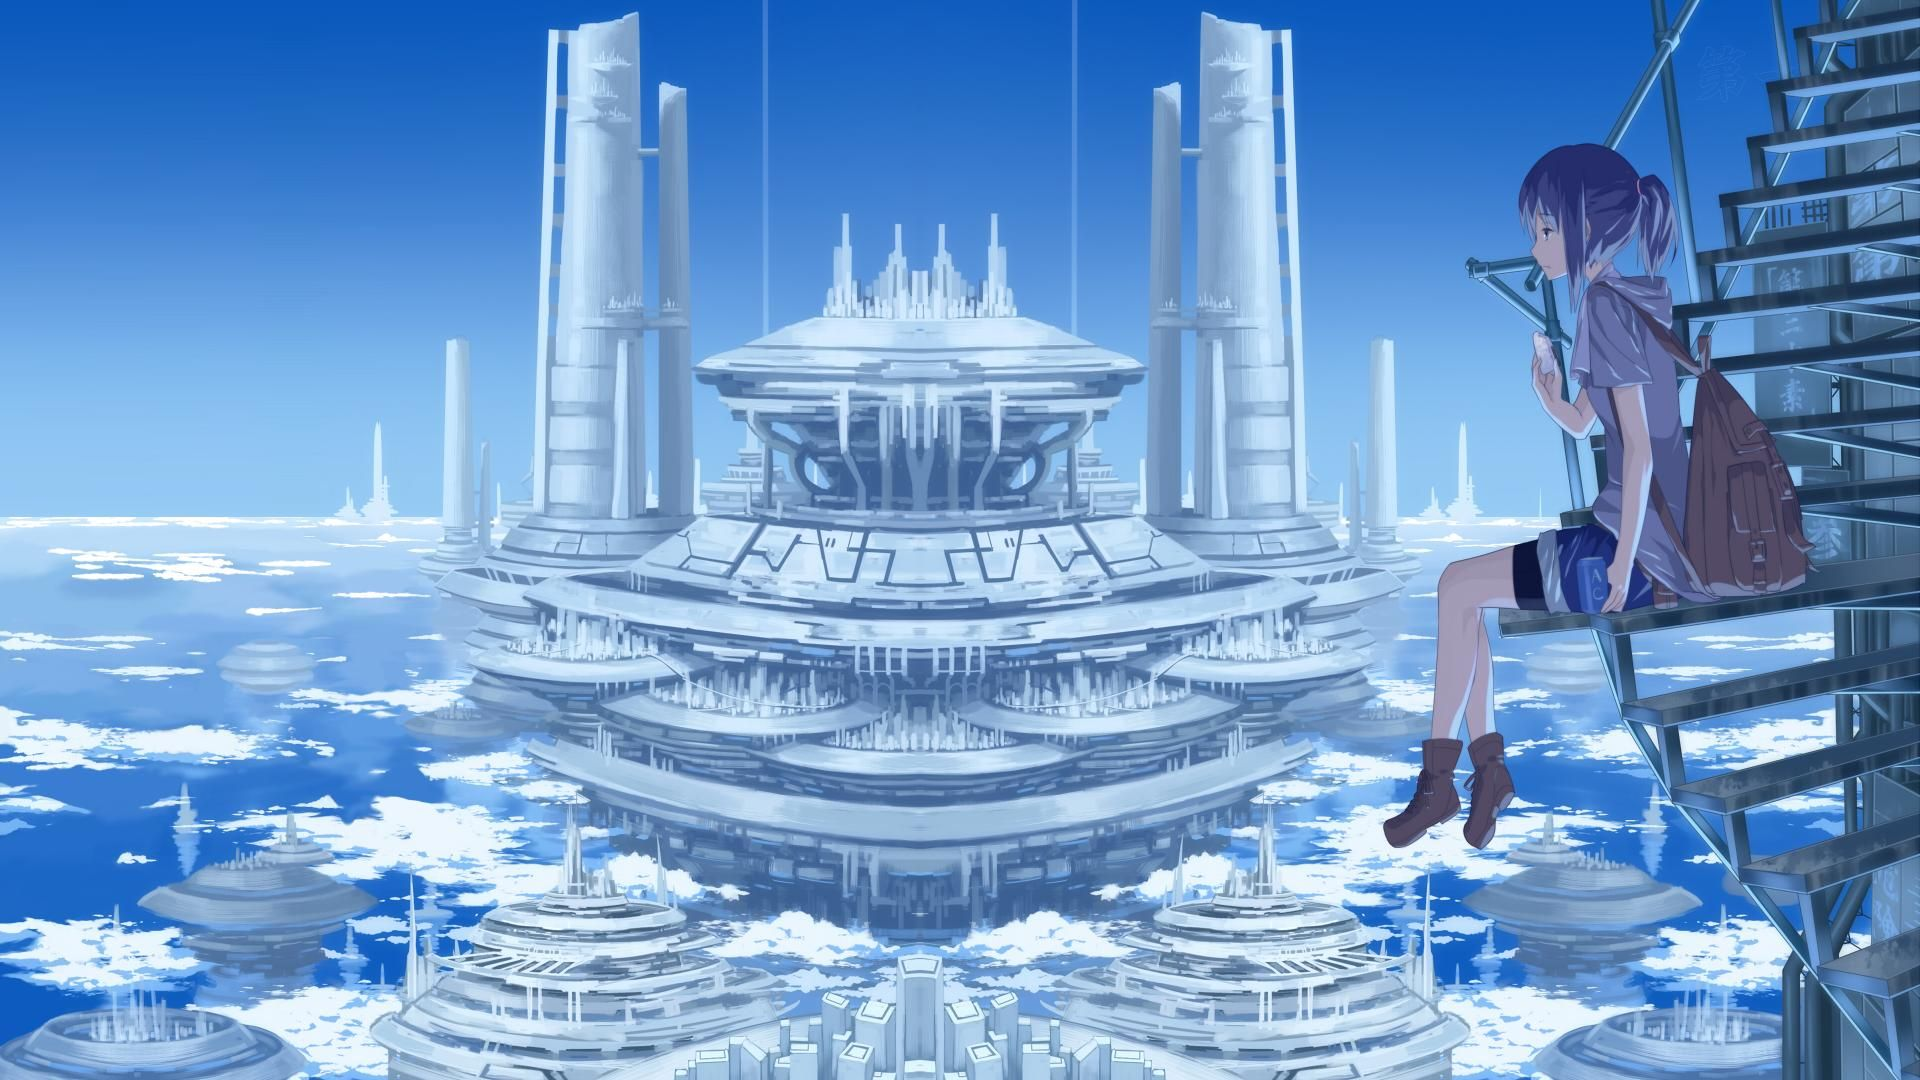 Pin By Phantomyuki On Old Anime Section Anime Scenery Anime Backgrounds Wallpapers Anime Scenery Wallpaper